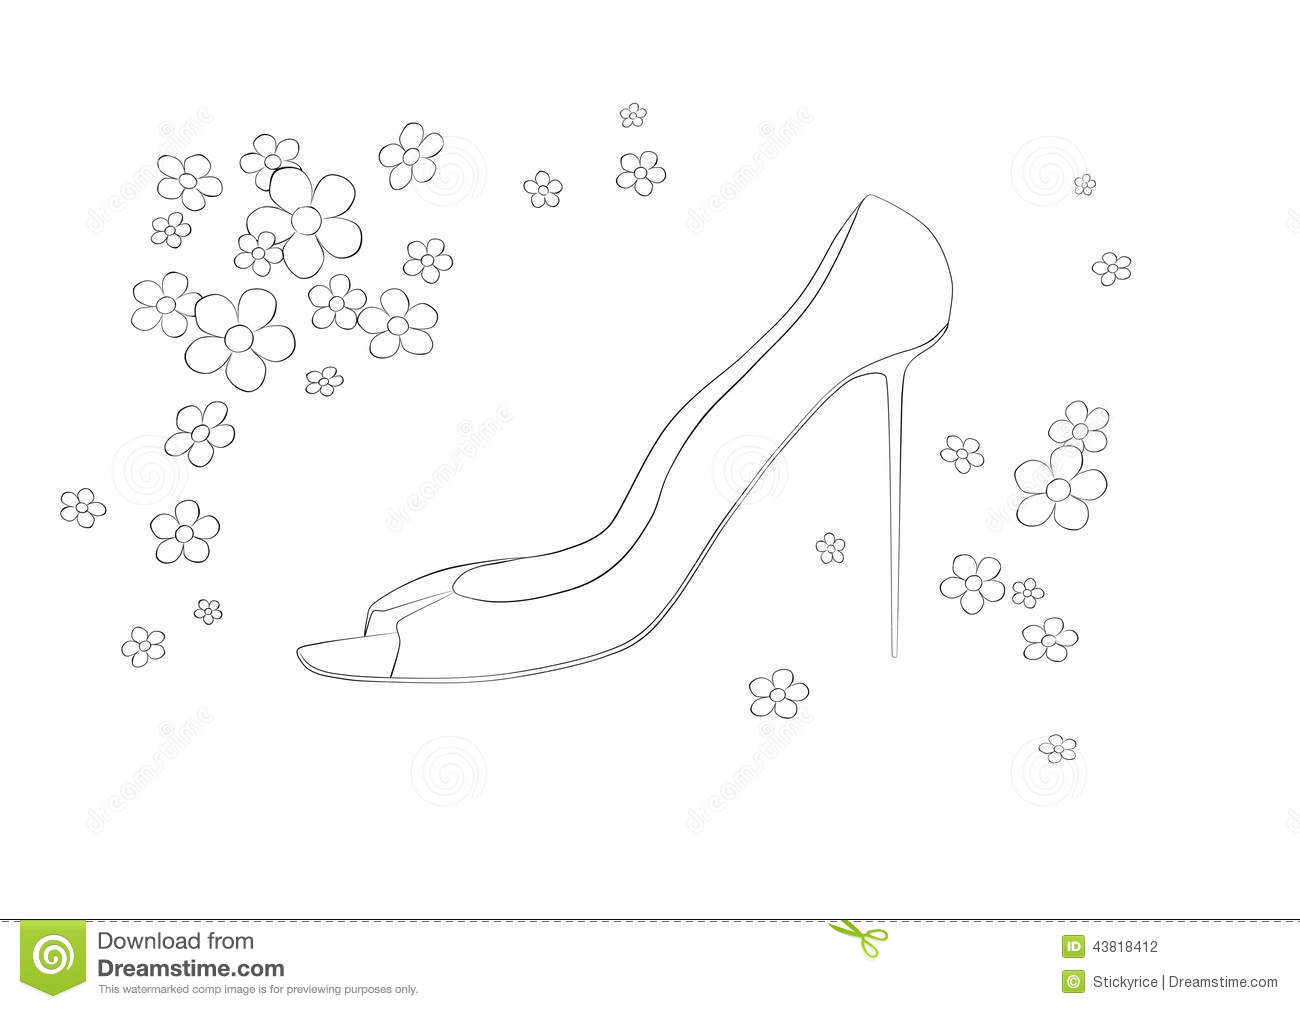 Shoe Flower Line Drawing : High heel shoes drawing stock photos royalty free images